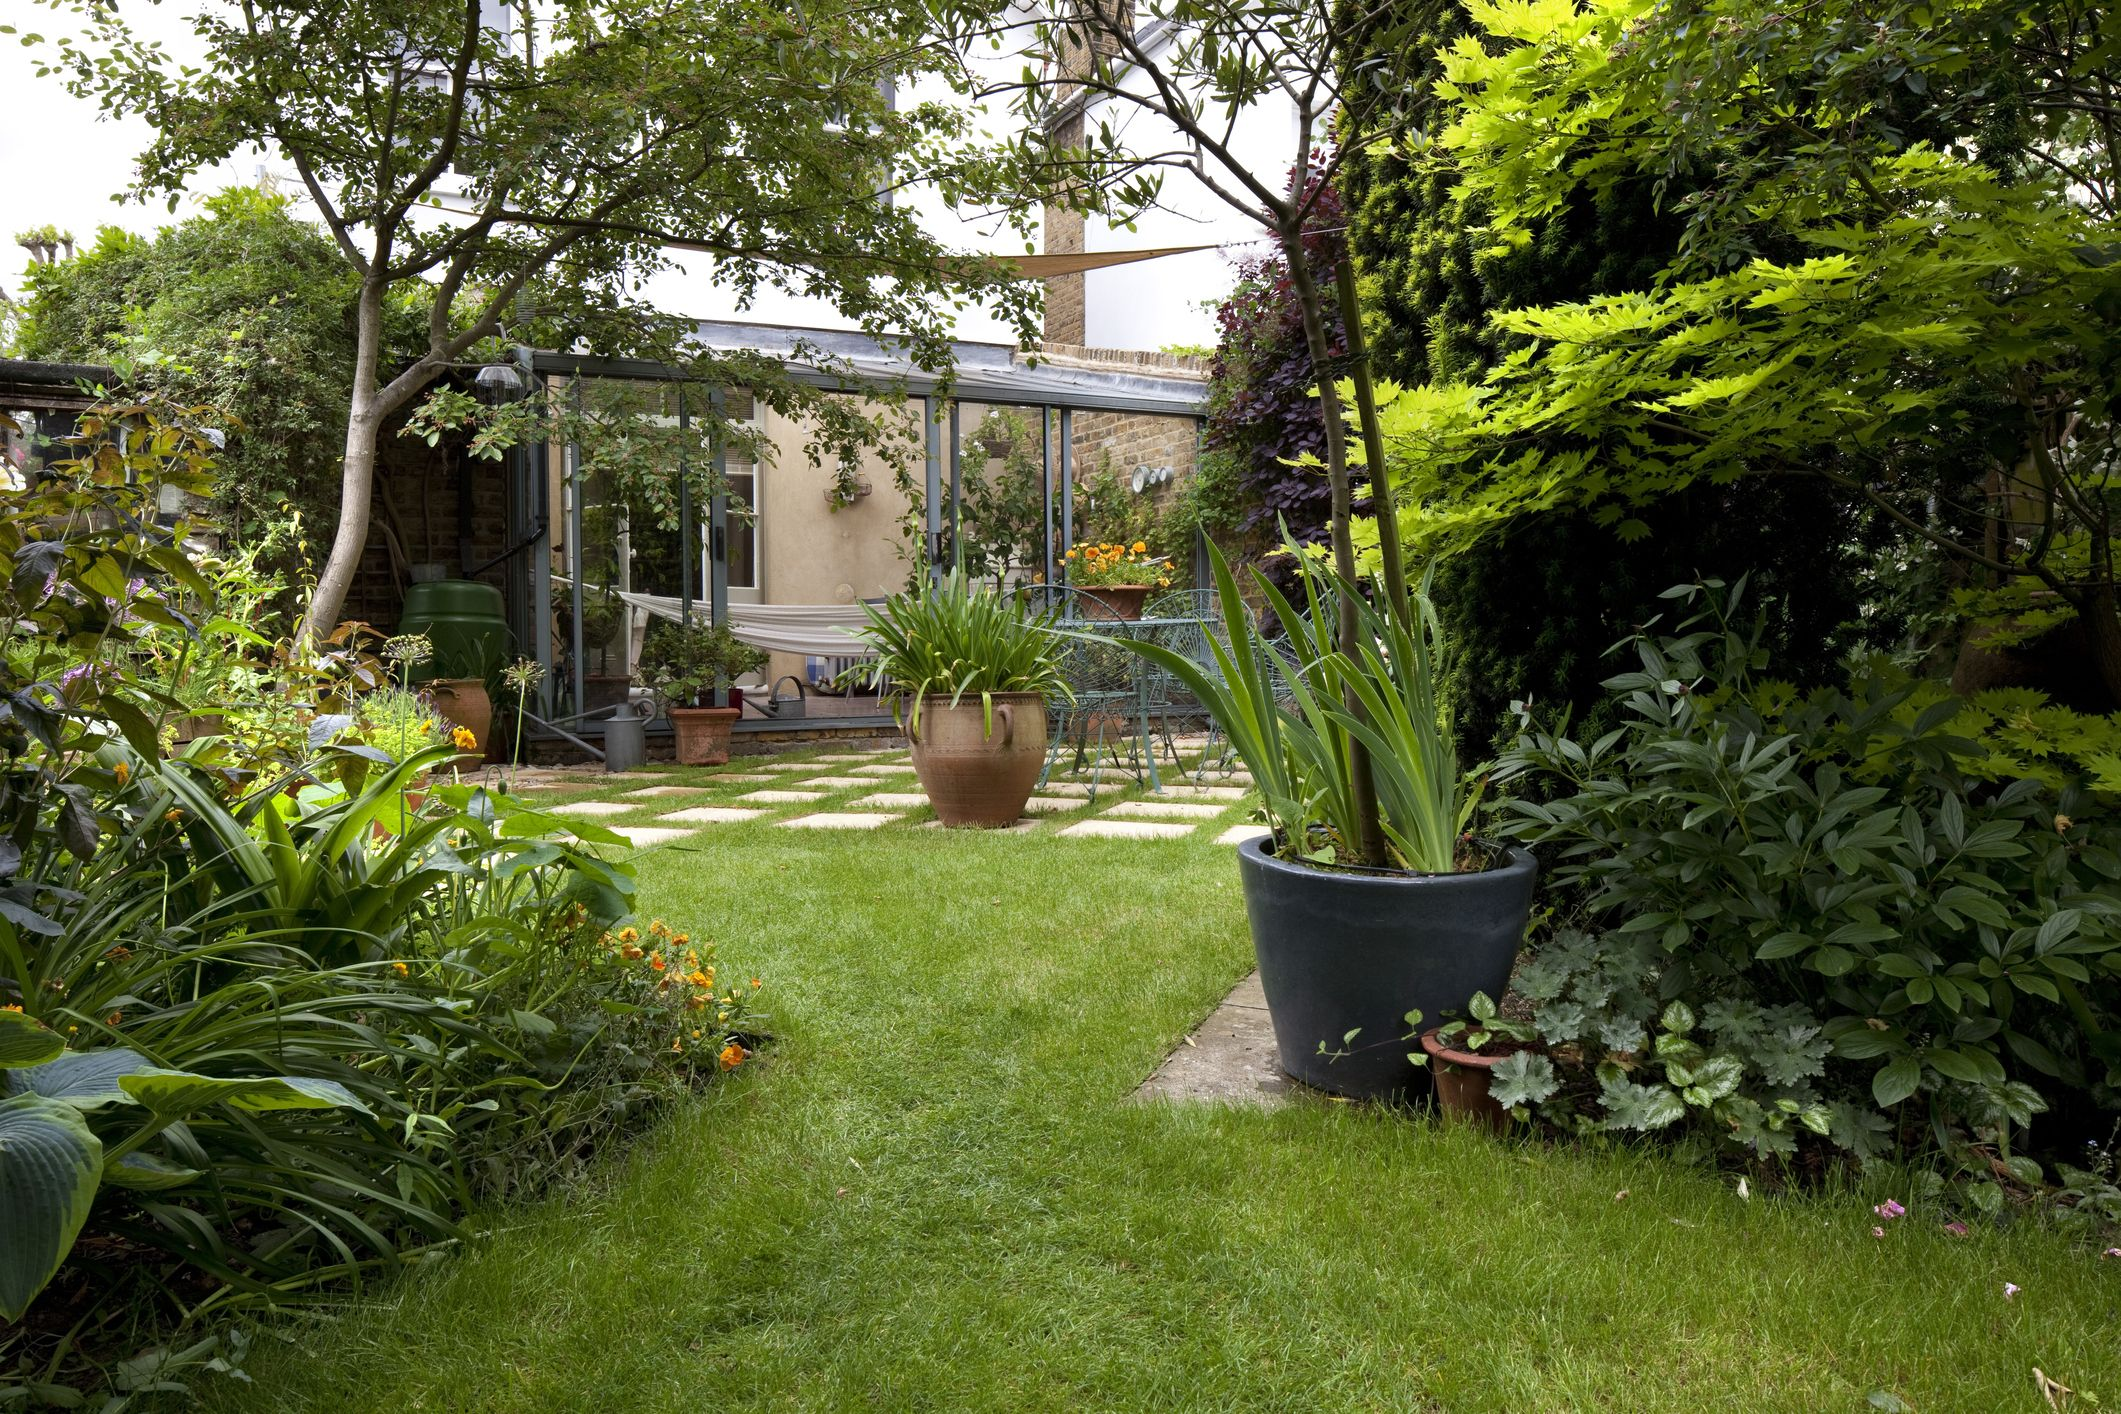 Perfect Suburban Garden And Lawn, Kingston Upon Thames, England, UK